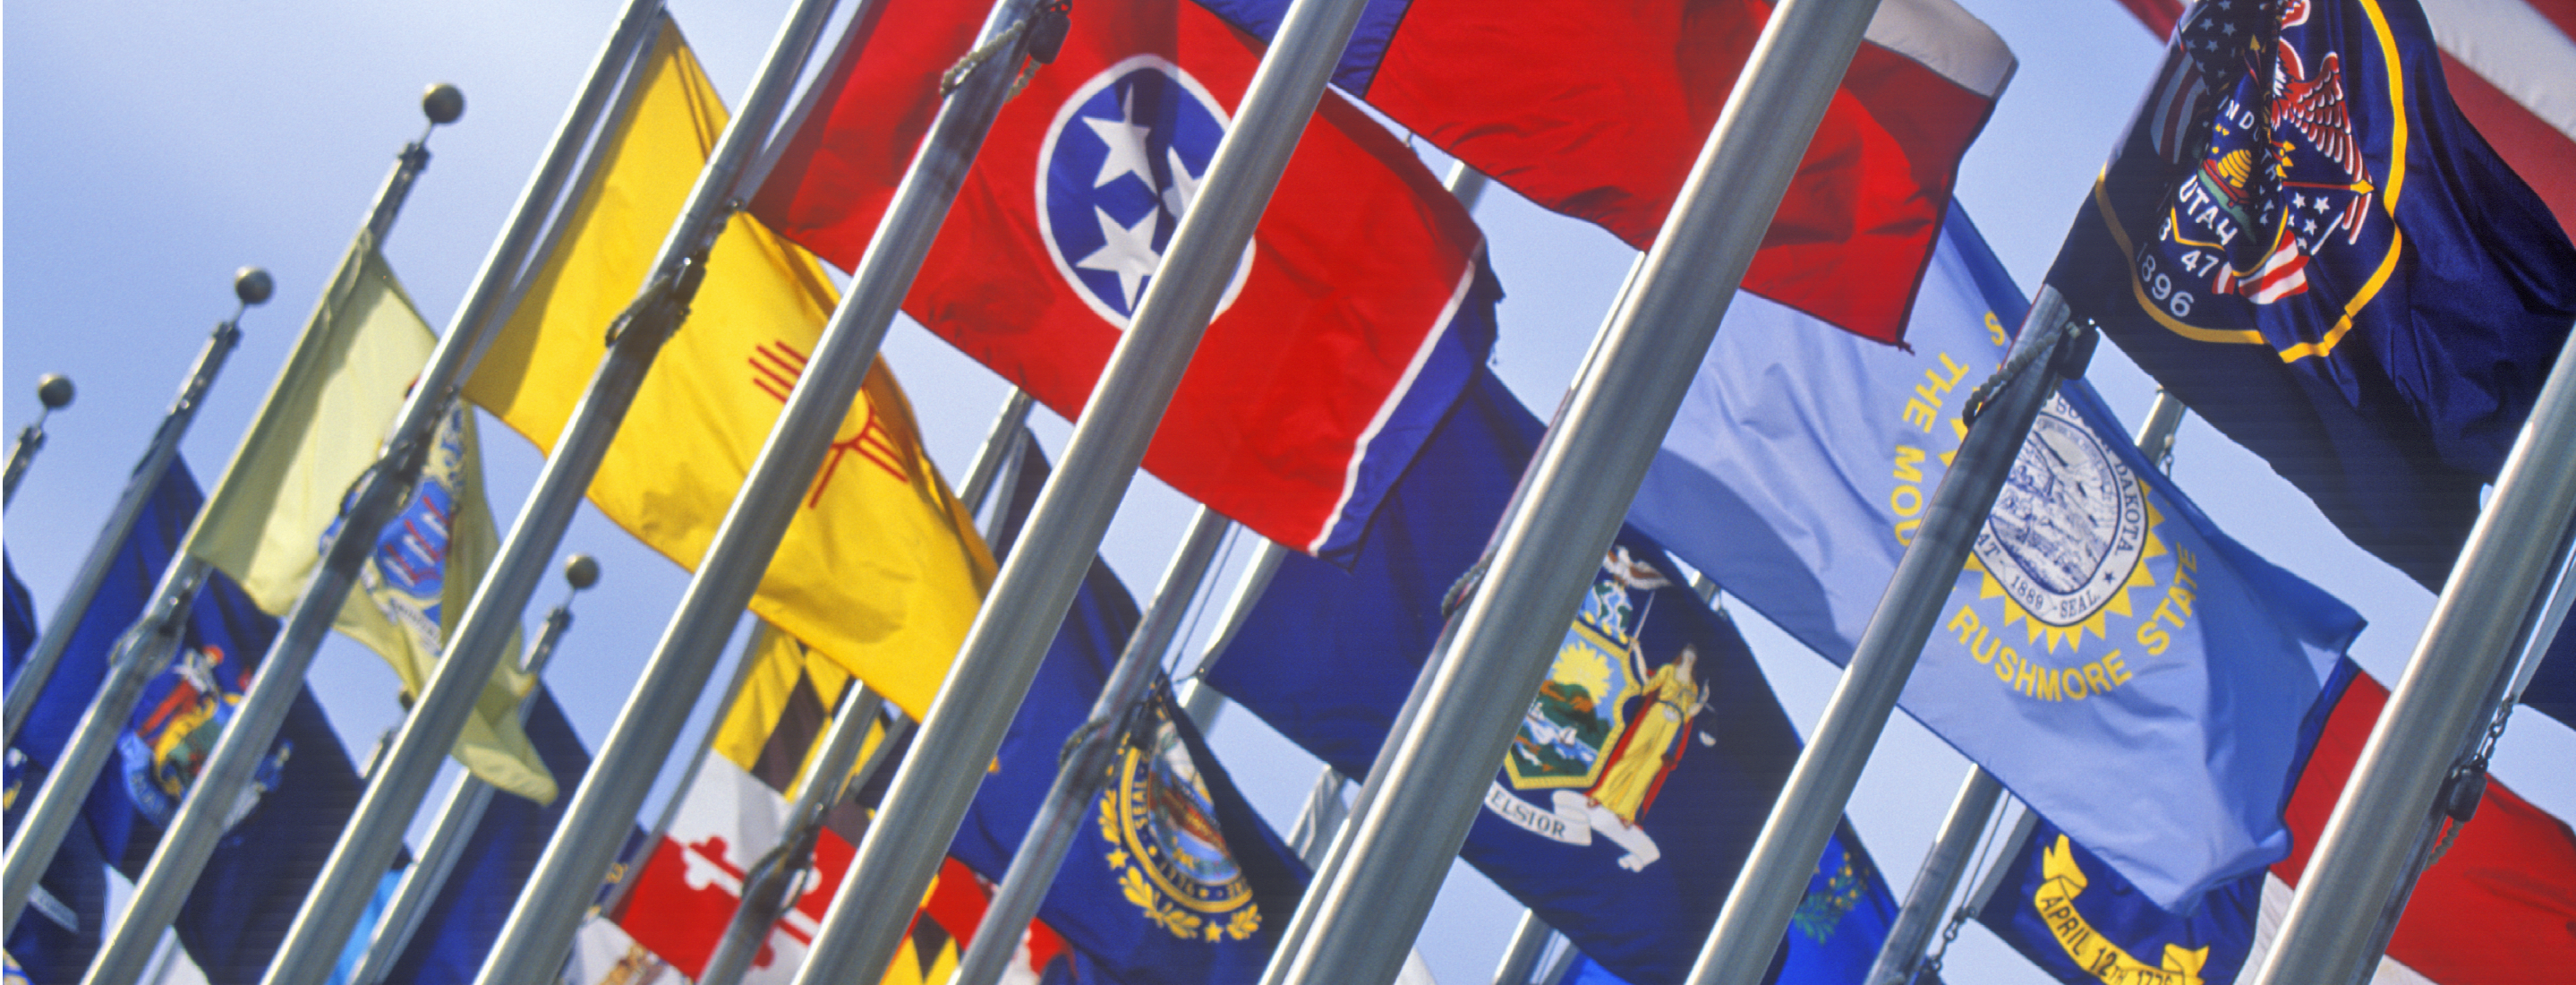 U.S. State and Territorial 3x5 Flags